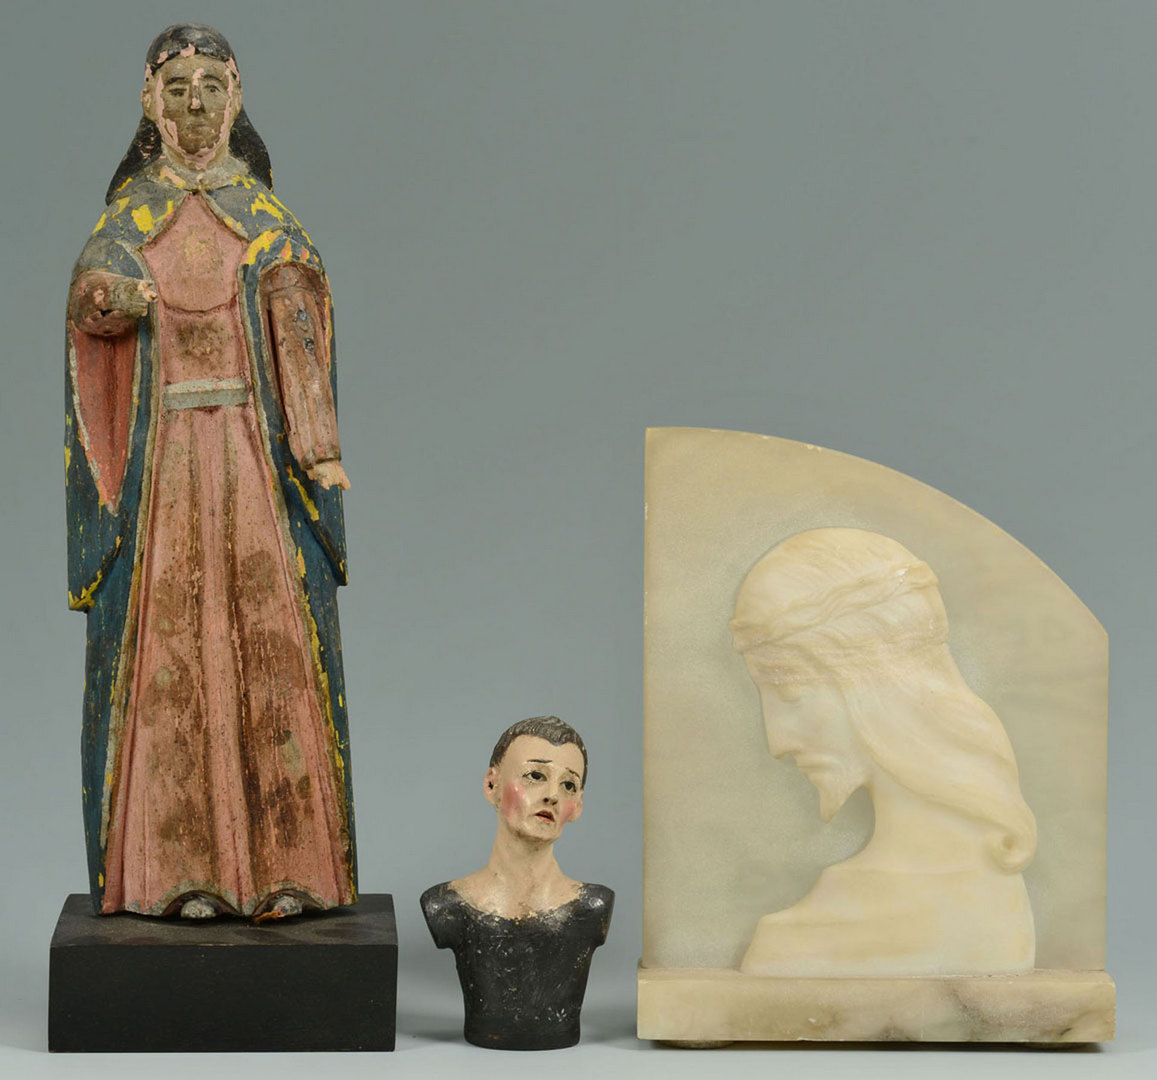 Lot 334: Grouping of Religious Items, including Santos